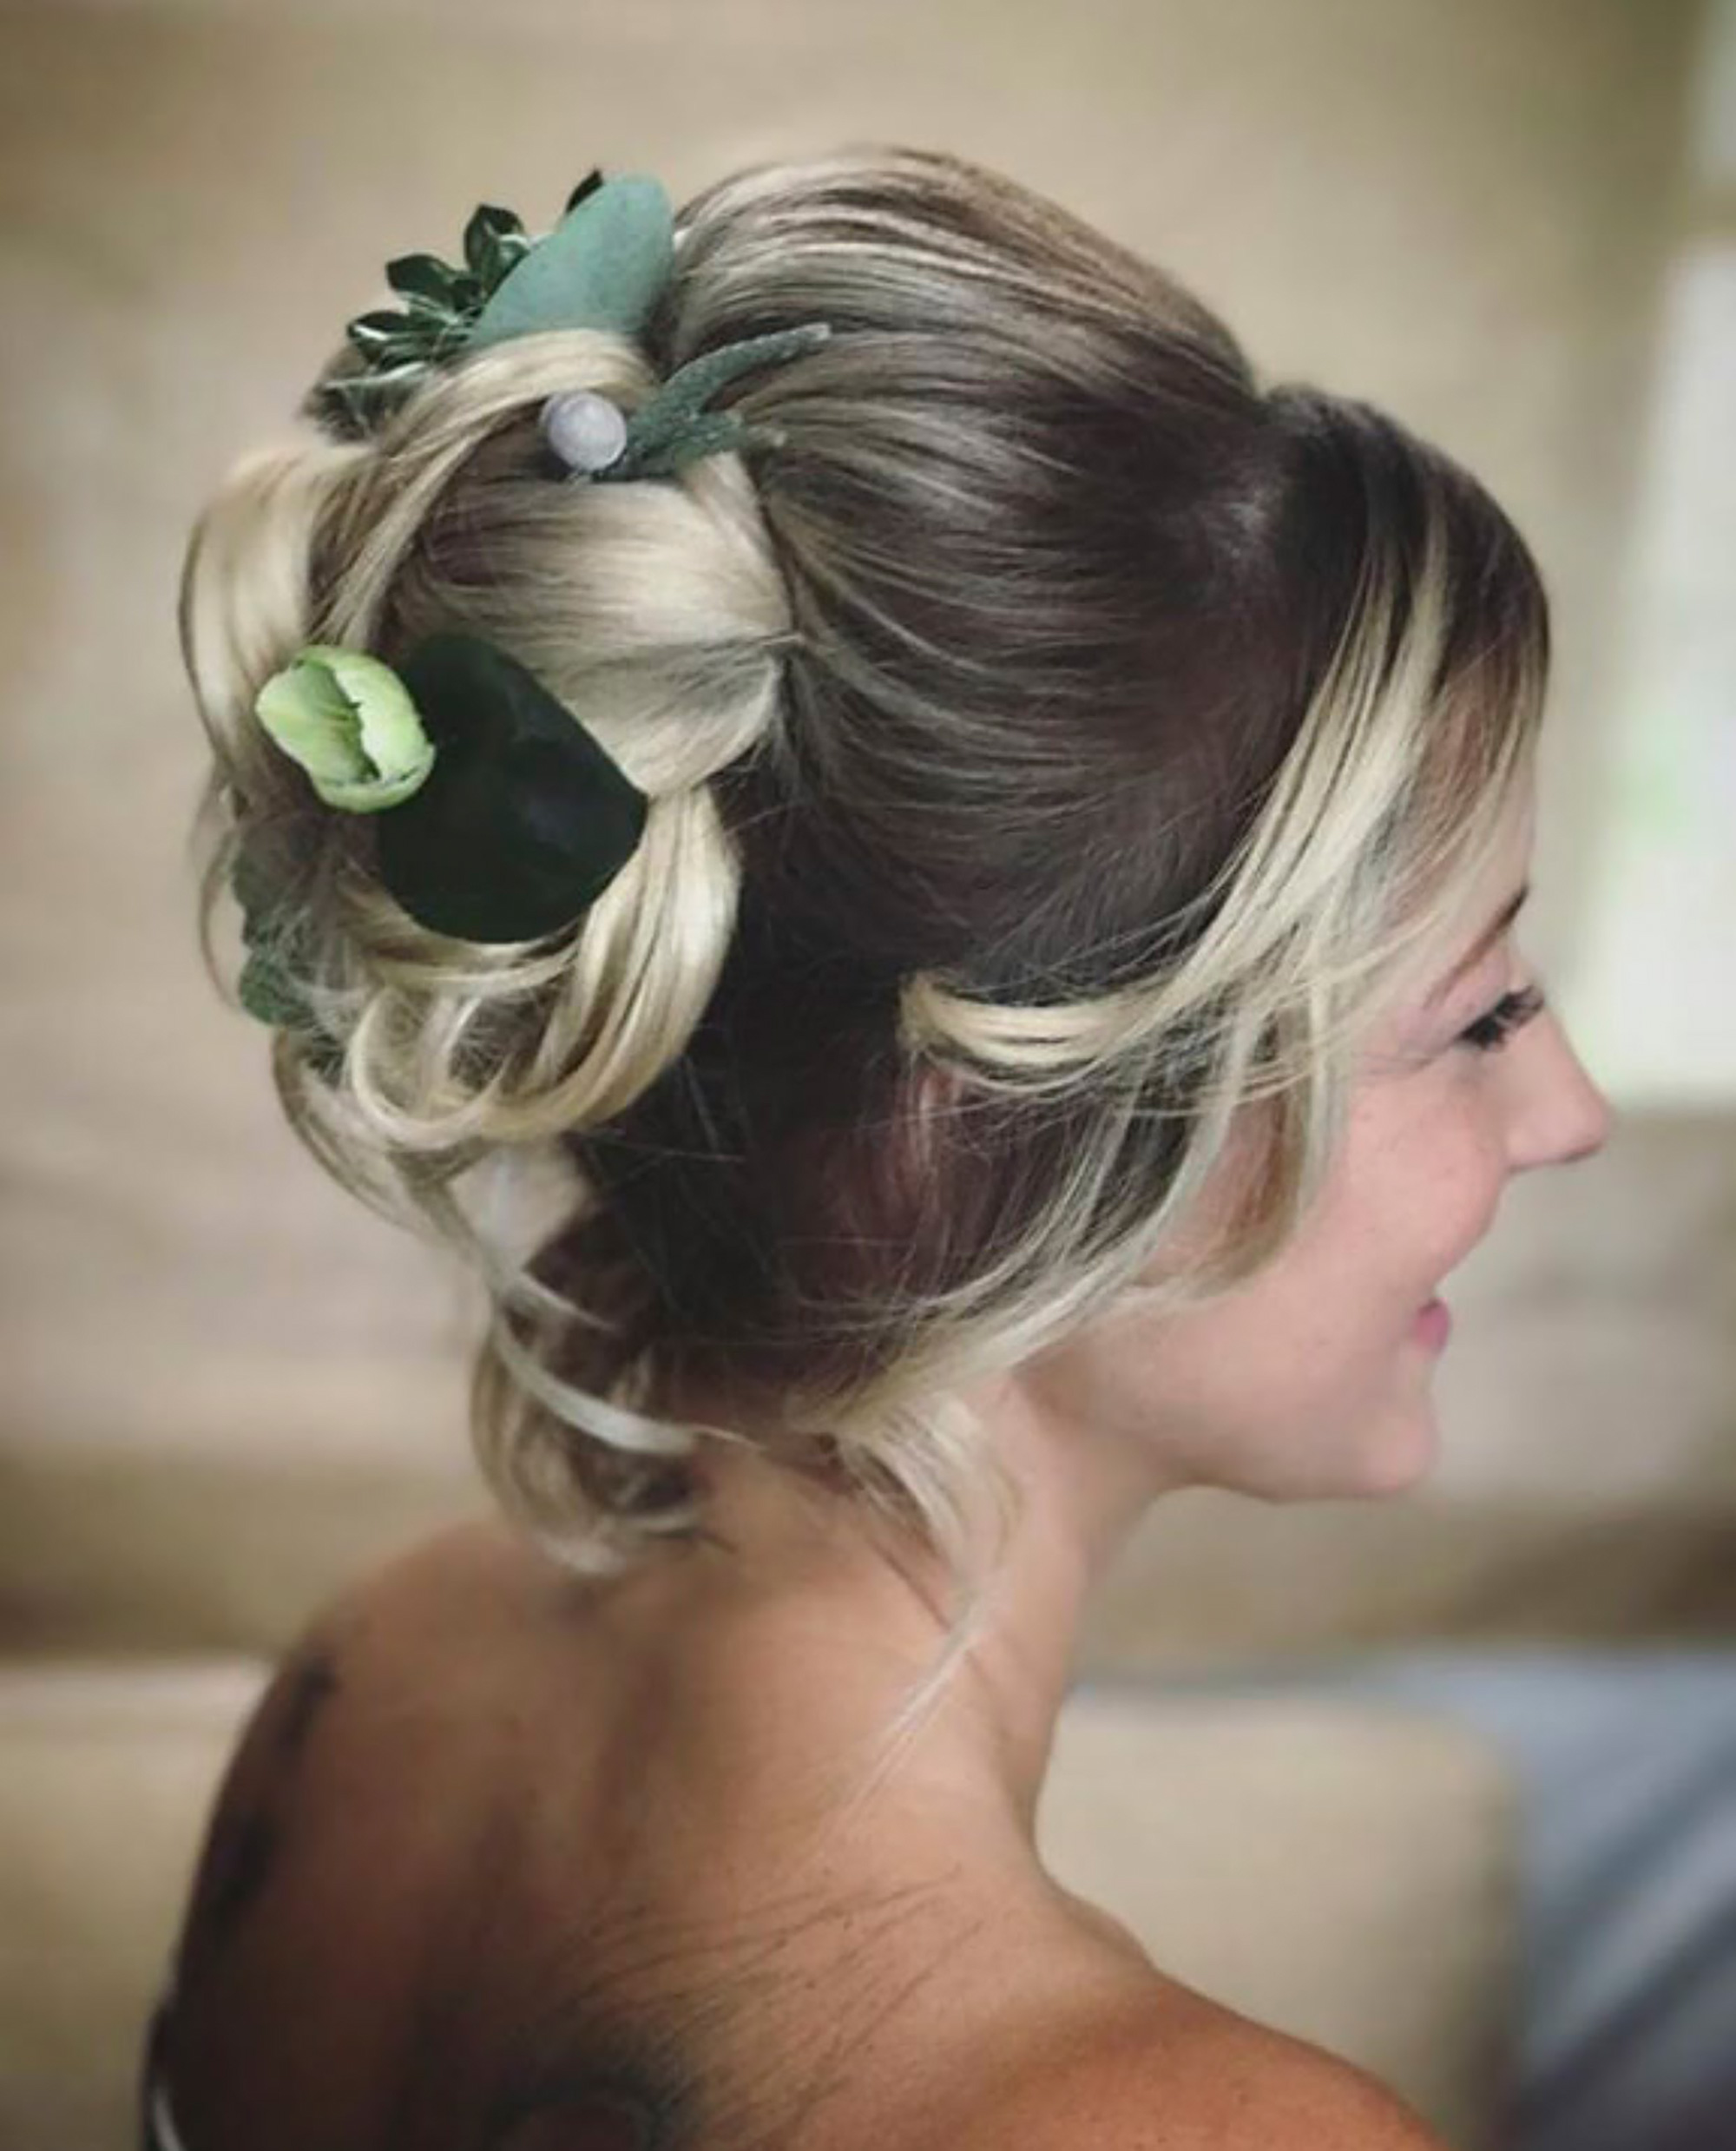 Weddings_In_The_Wyldes_Hannah_Woodgates_natural_hair_updo.jpg